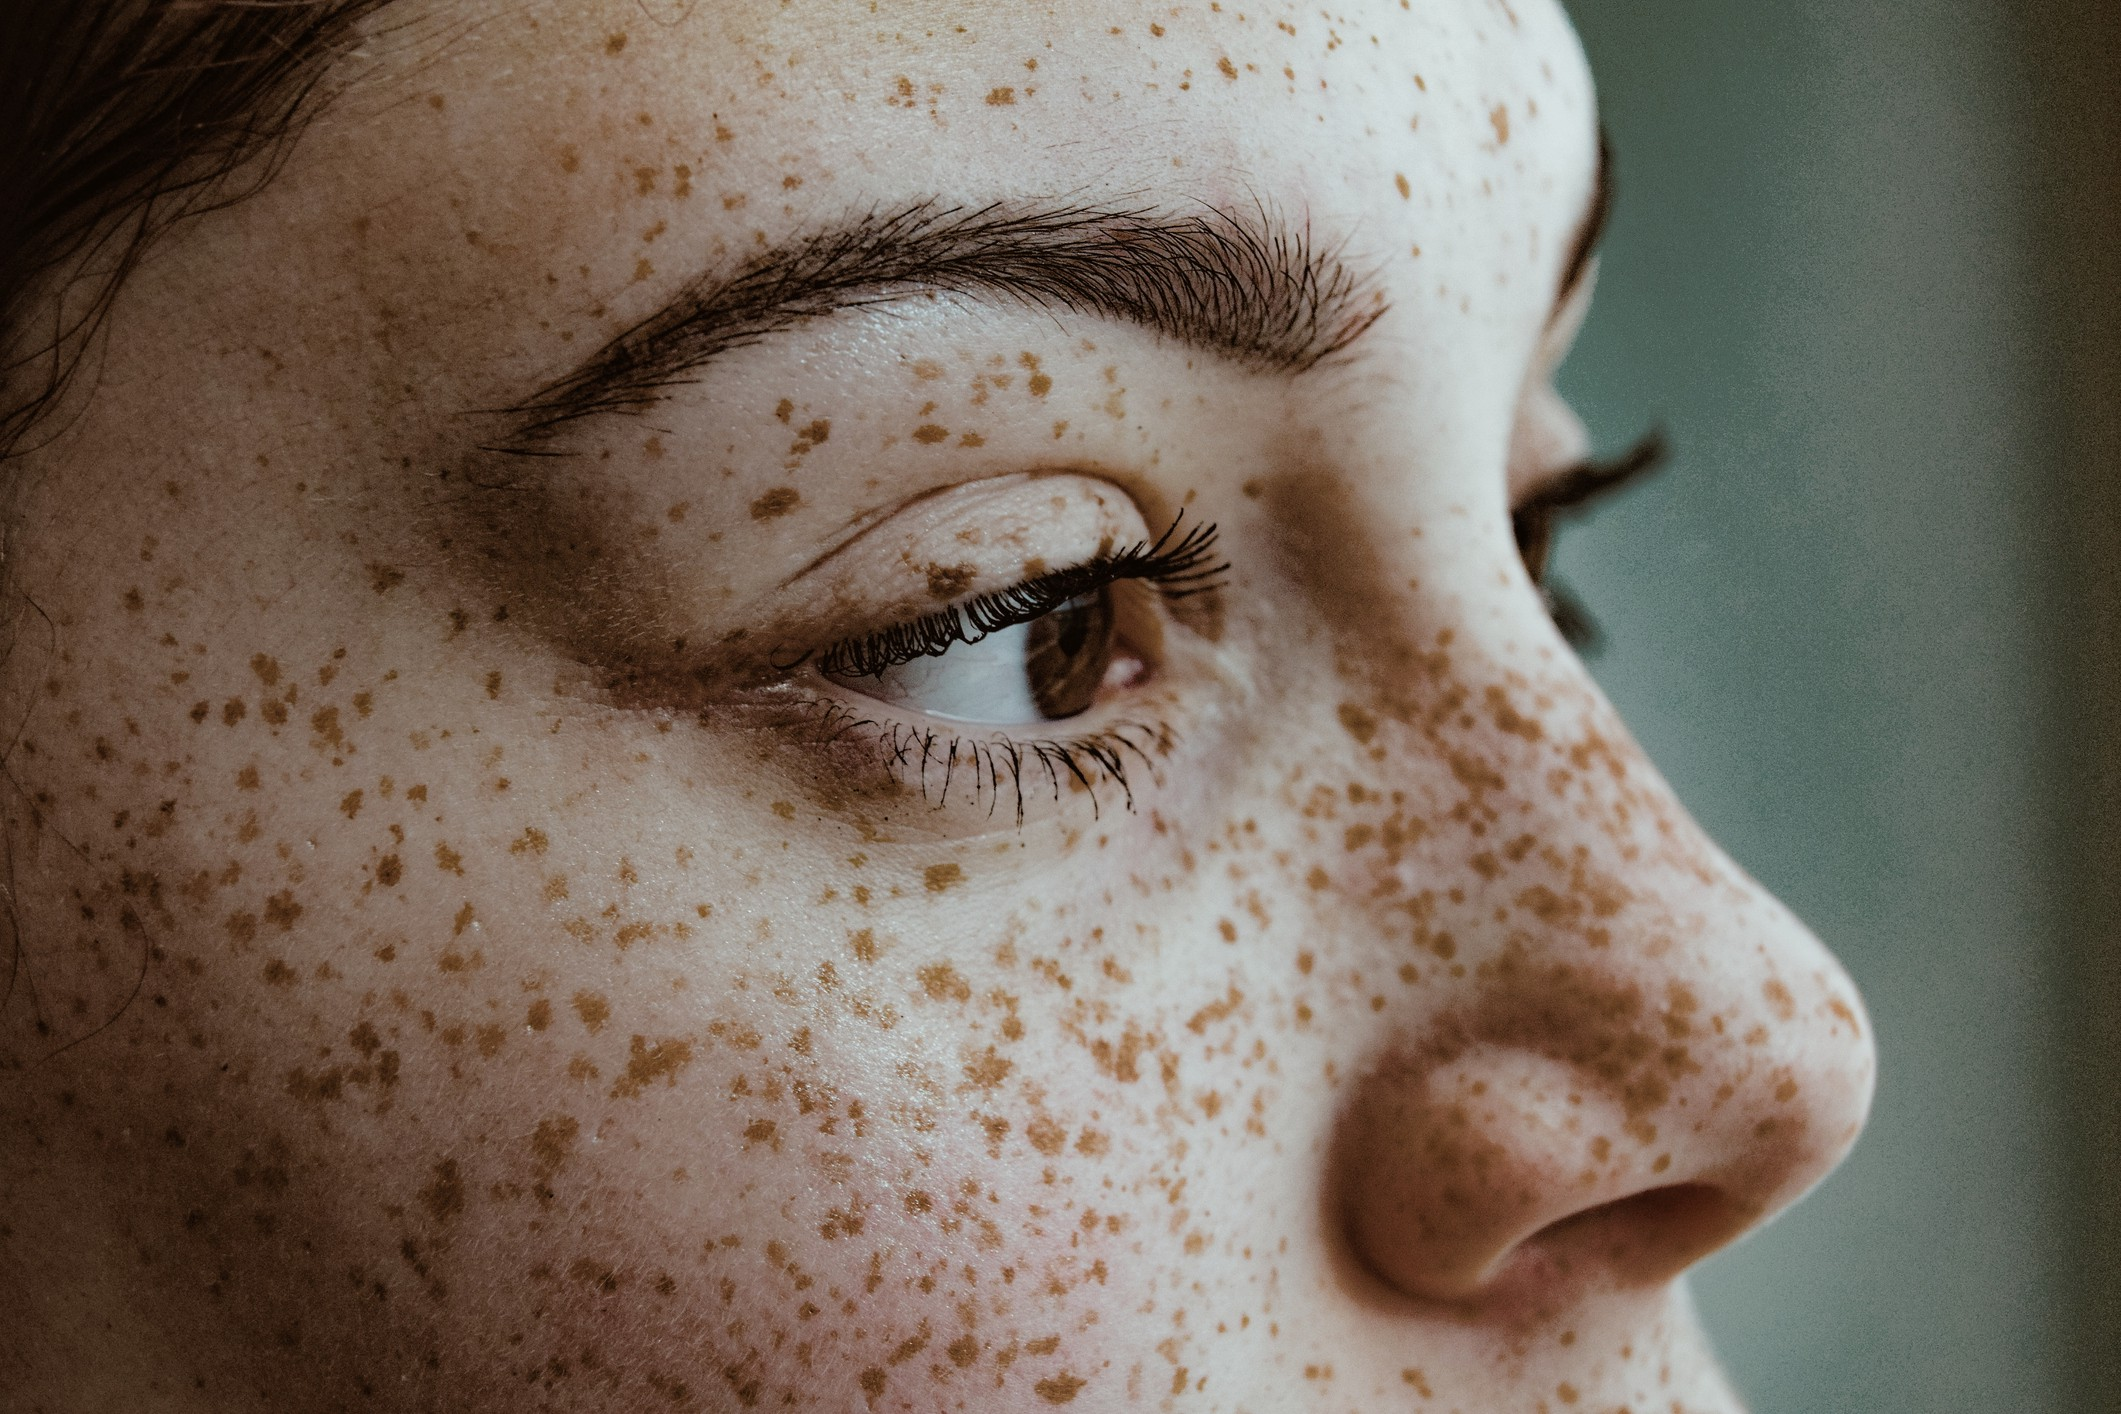 Closeup of woman's face with freckles.